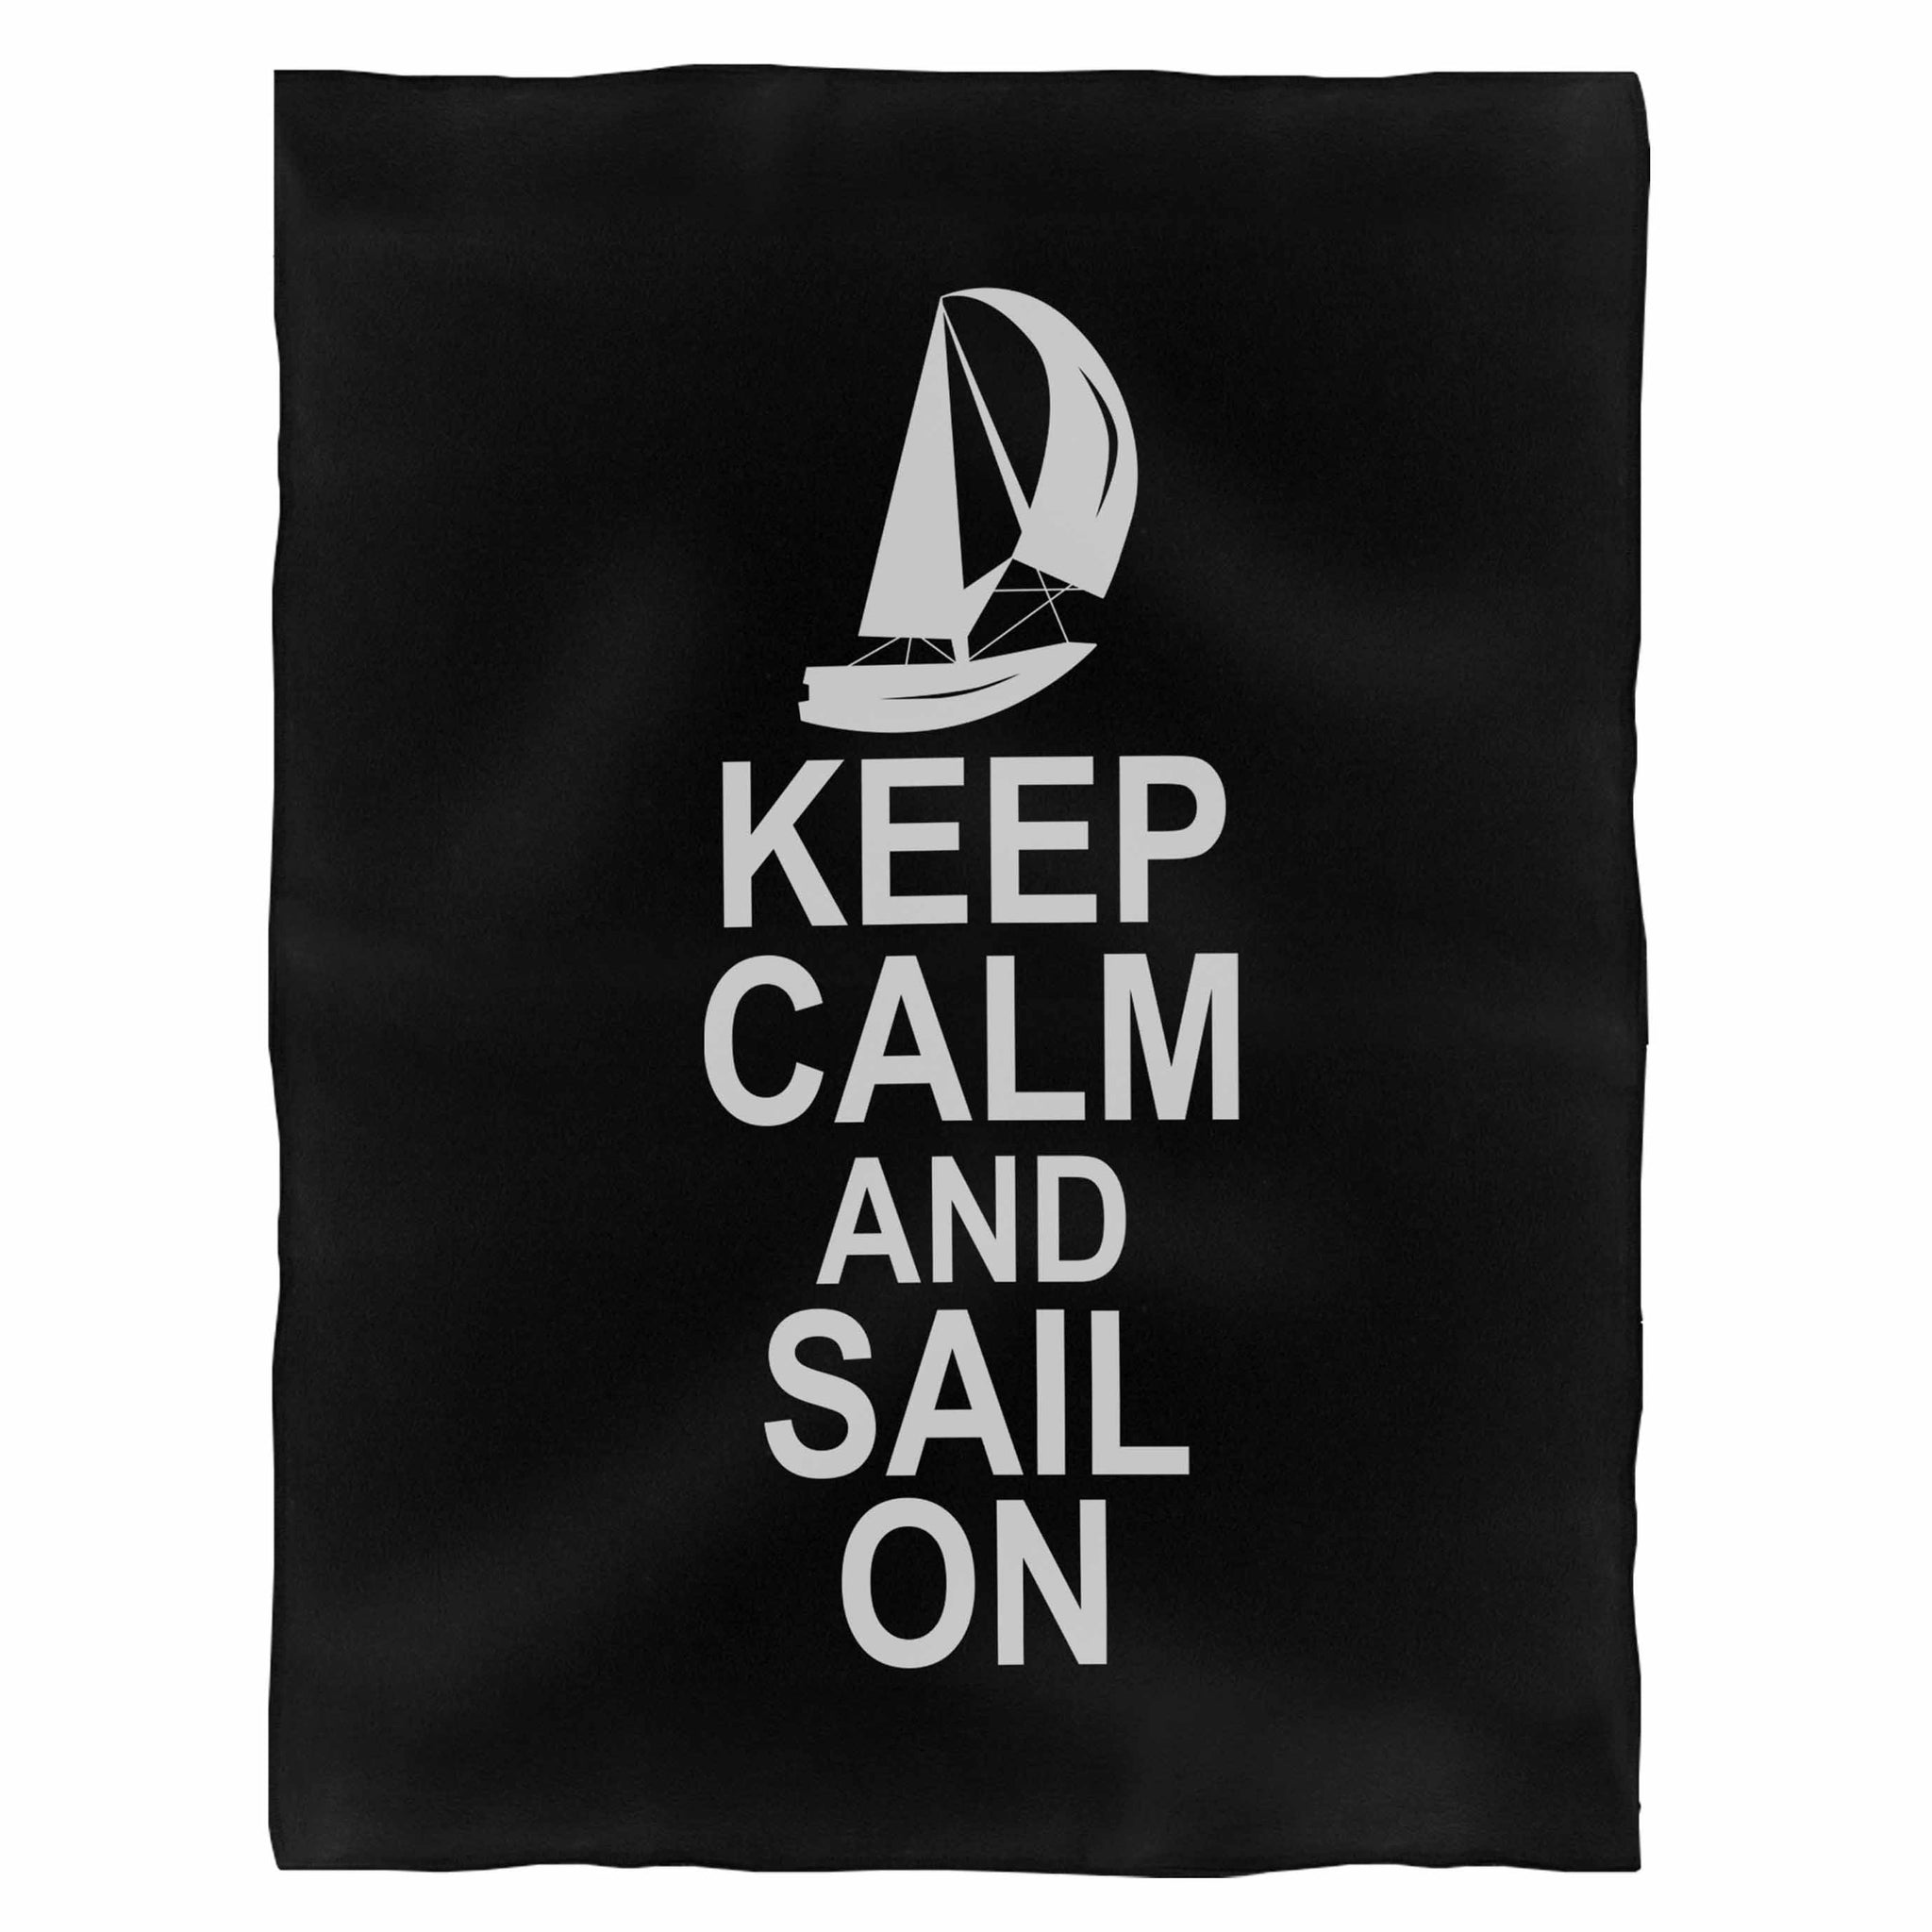 Keep Calm And Sail On Funny Sailing Keep Calm Fleece Blanket